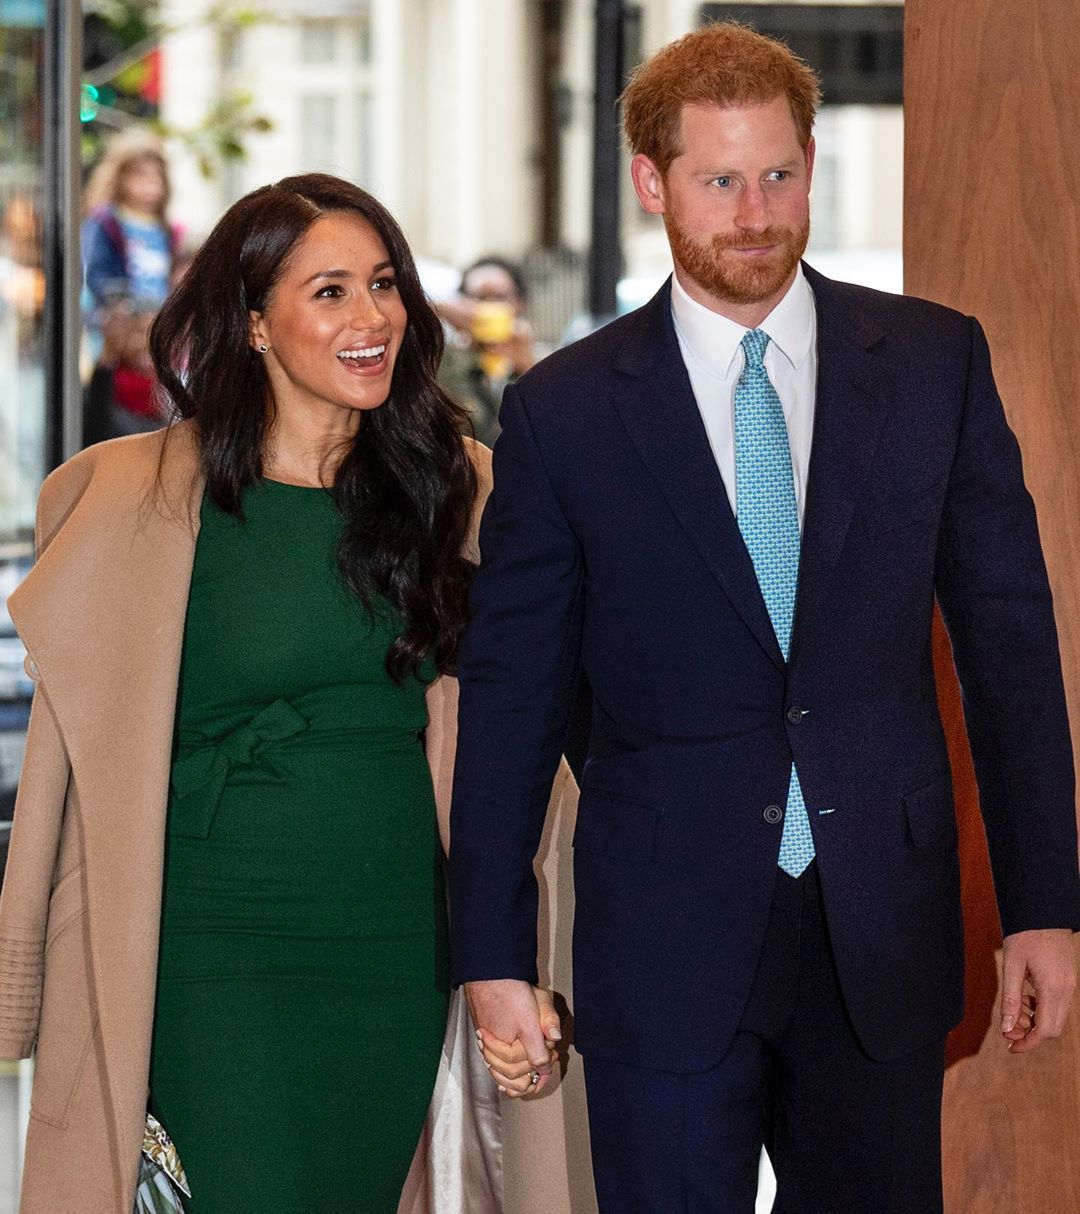 O The Oprah Magazine On Instagram Prince Harry And Meghan Markle Have Opened Up About Their Decision To Step Do Prince Harry And Meghan Meghan Markle Markle